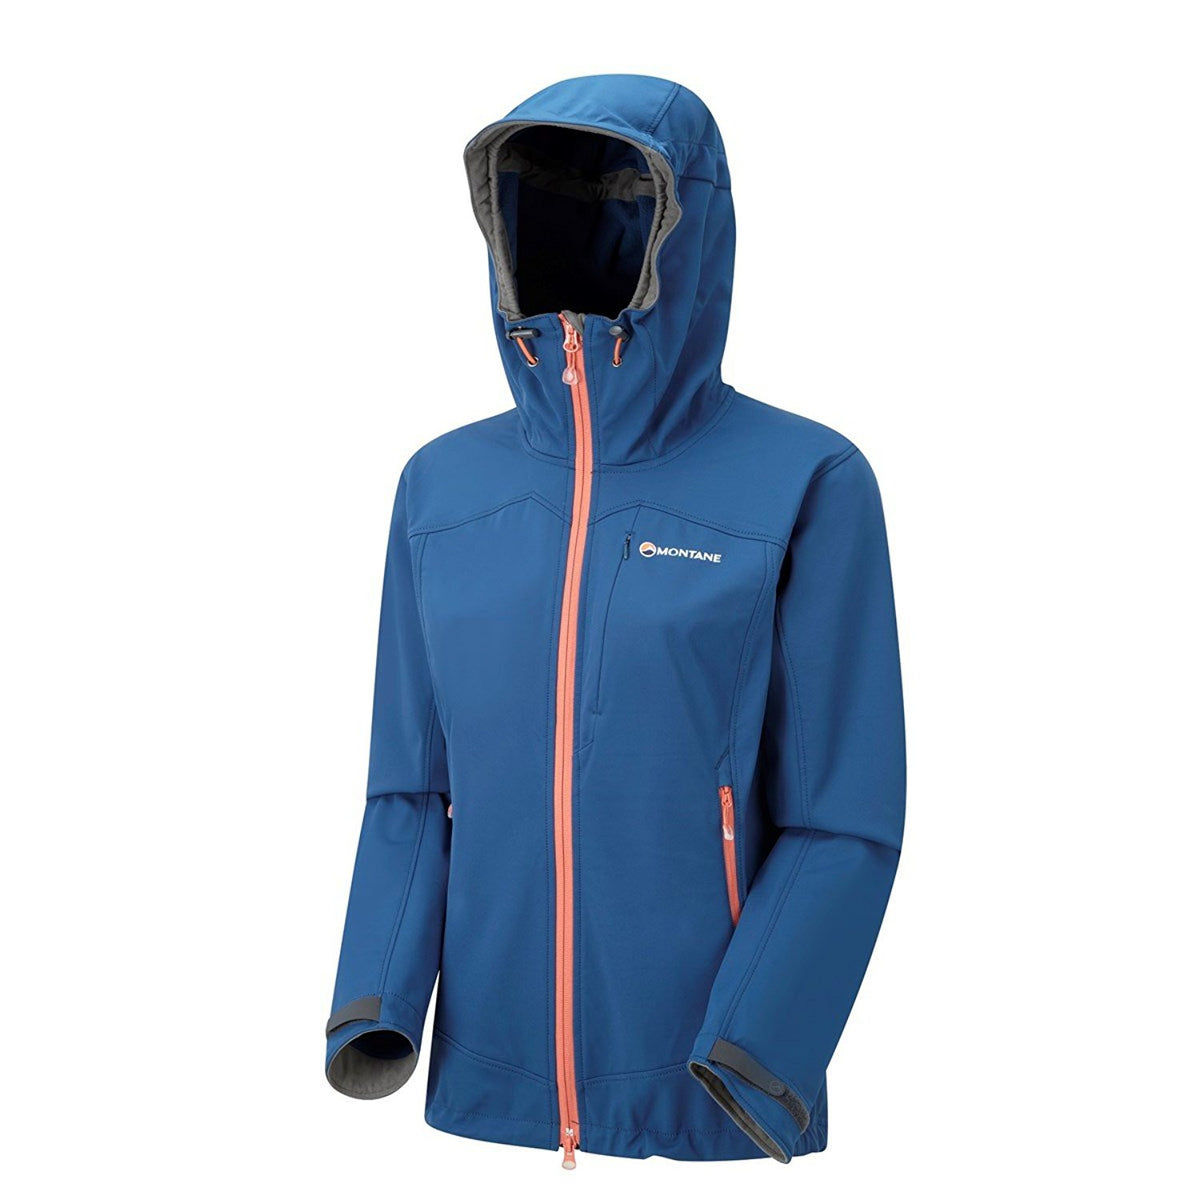 Montane-Women's Sabretooth Jacket-Women's Insulation & Down-Gearaholic.com.sg